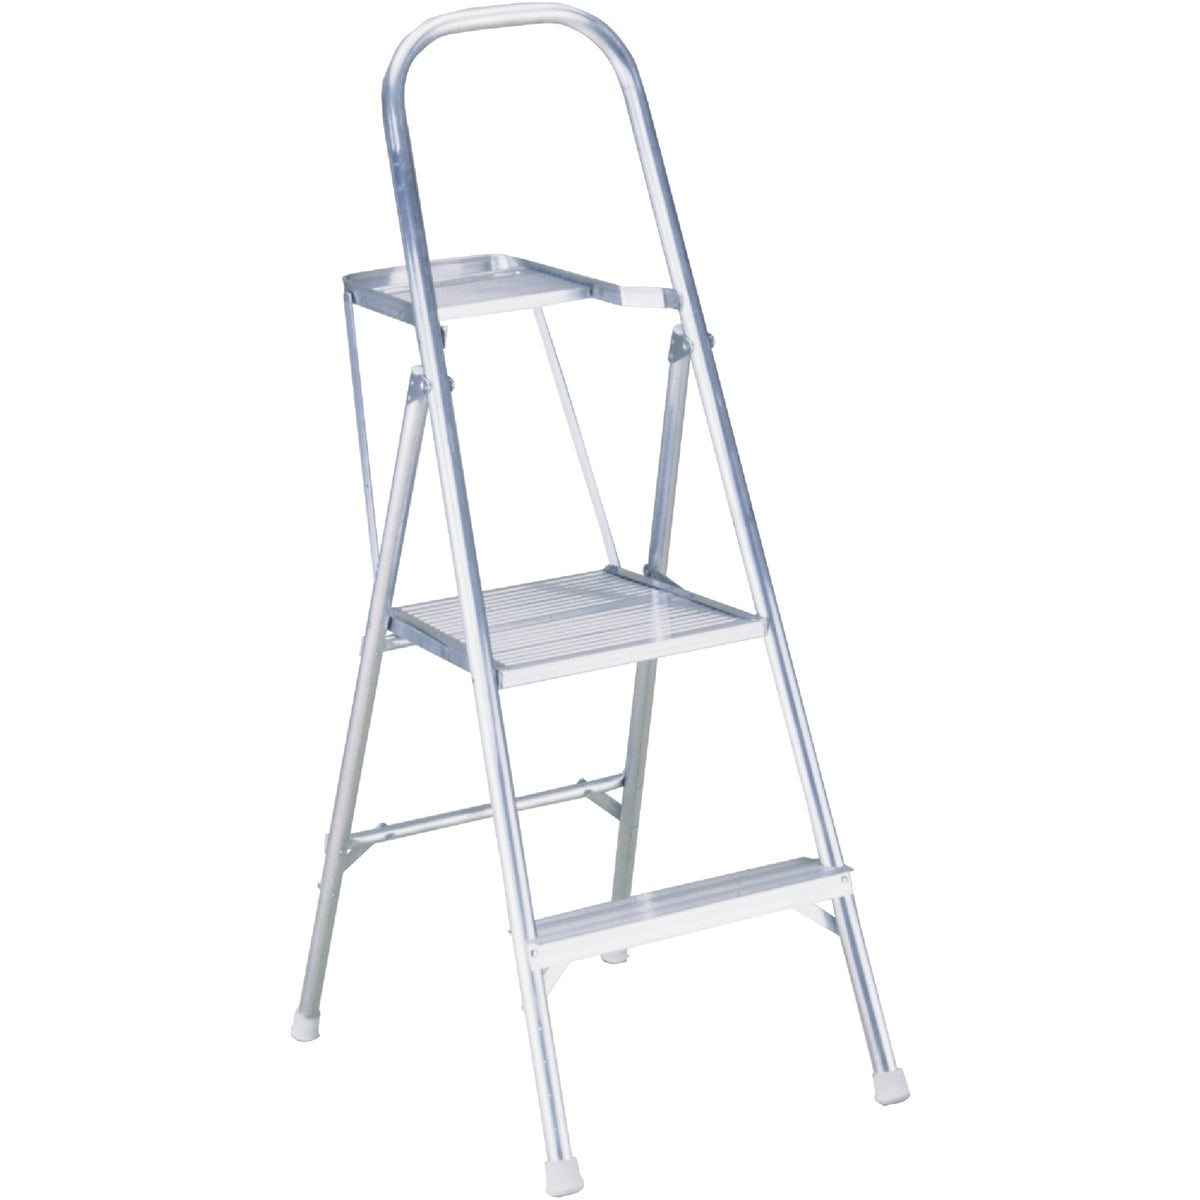 T-3 4.5' ALUM STEPLADDER - 264 by Werner Ladder